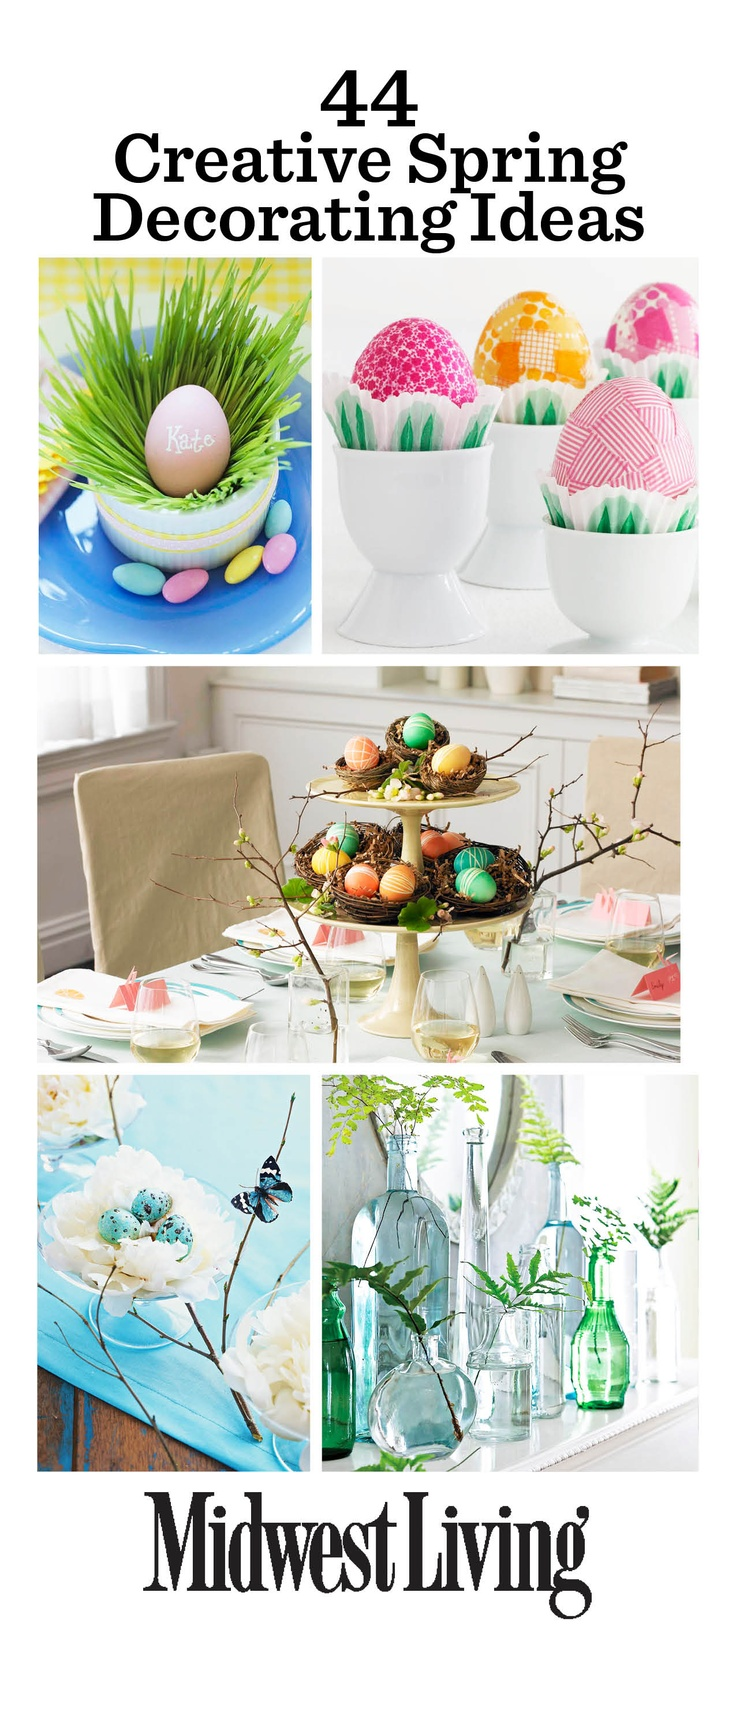 Easter and spring decorating inspirations! http://www.midwestliving.com/homes/entertaining/spring-centerpieces/